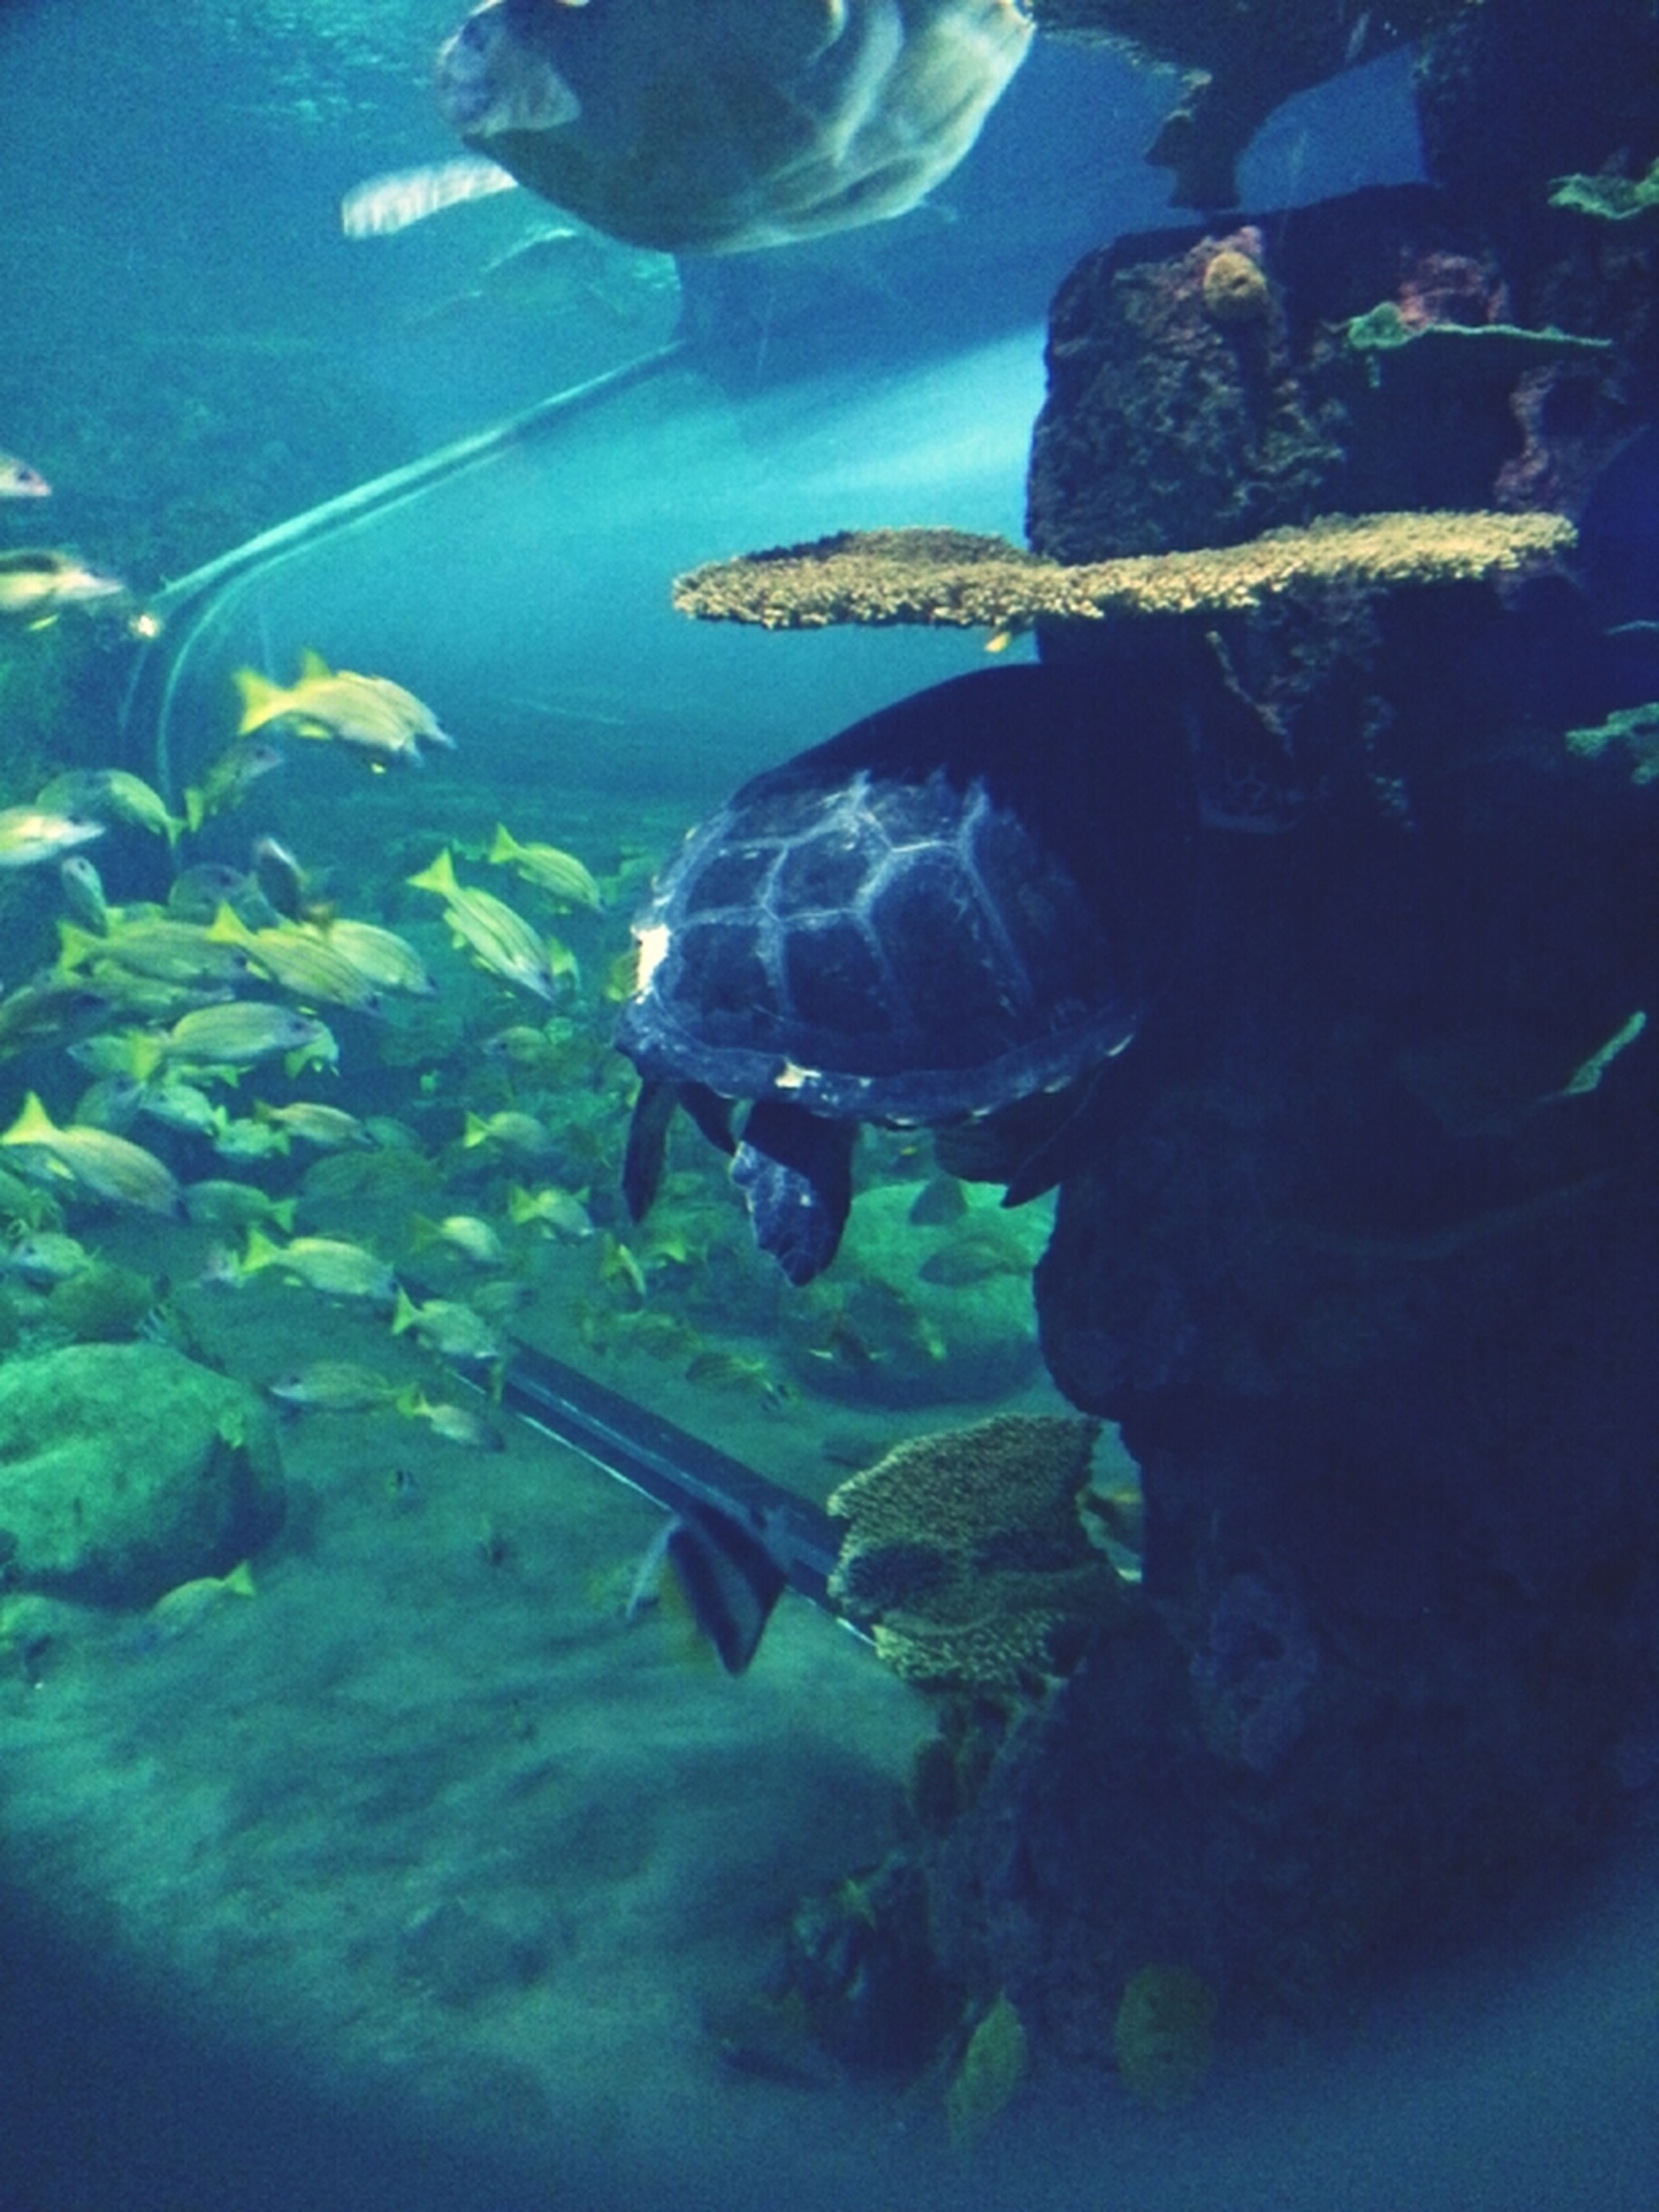 water, underwater, swimming, fish, sea life, blue, animal themes, sea, undersea, wildlife, animals in the wild, high angle view, indoors, aquarium, nature, transparent, one animal, reflection, turtle, no people